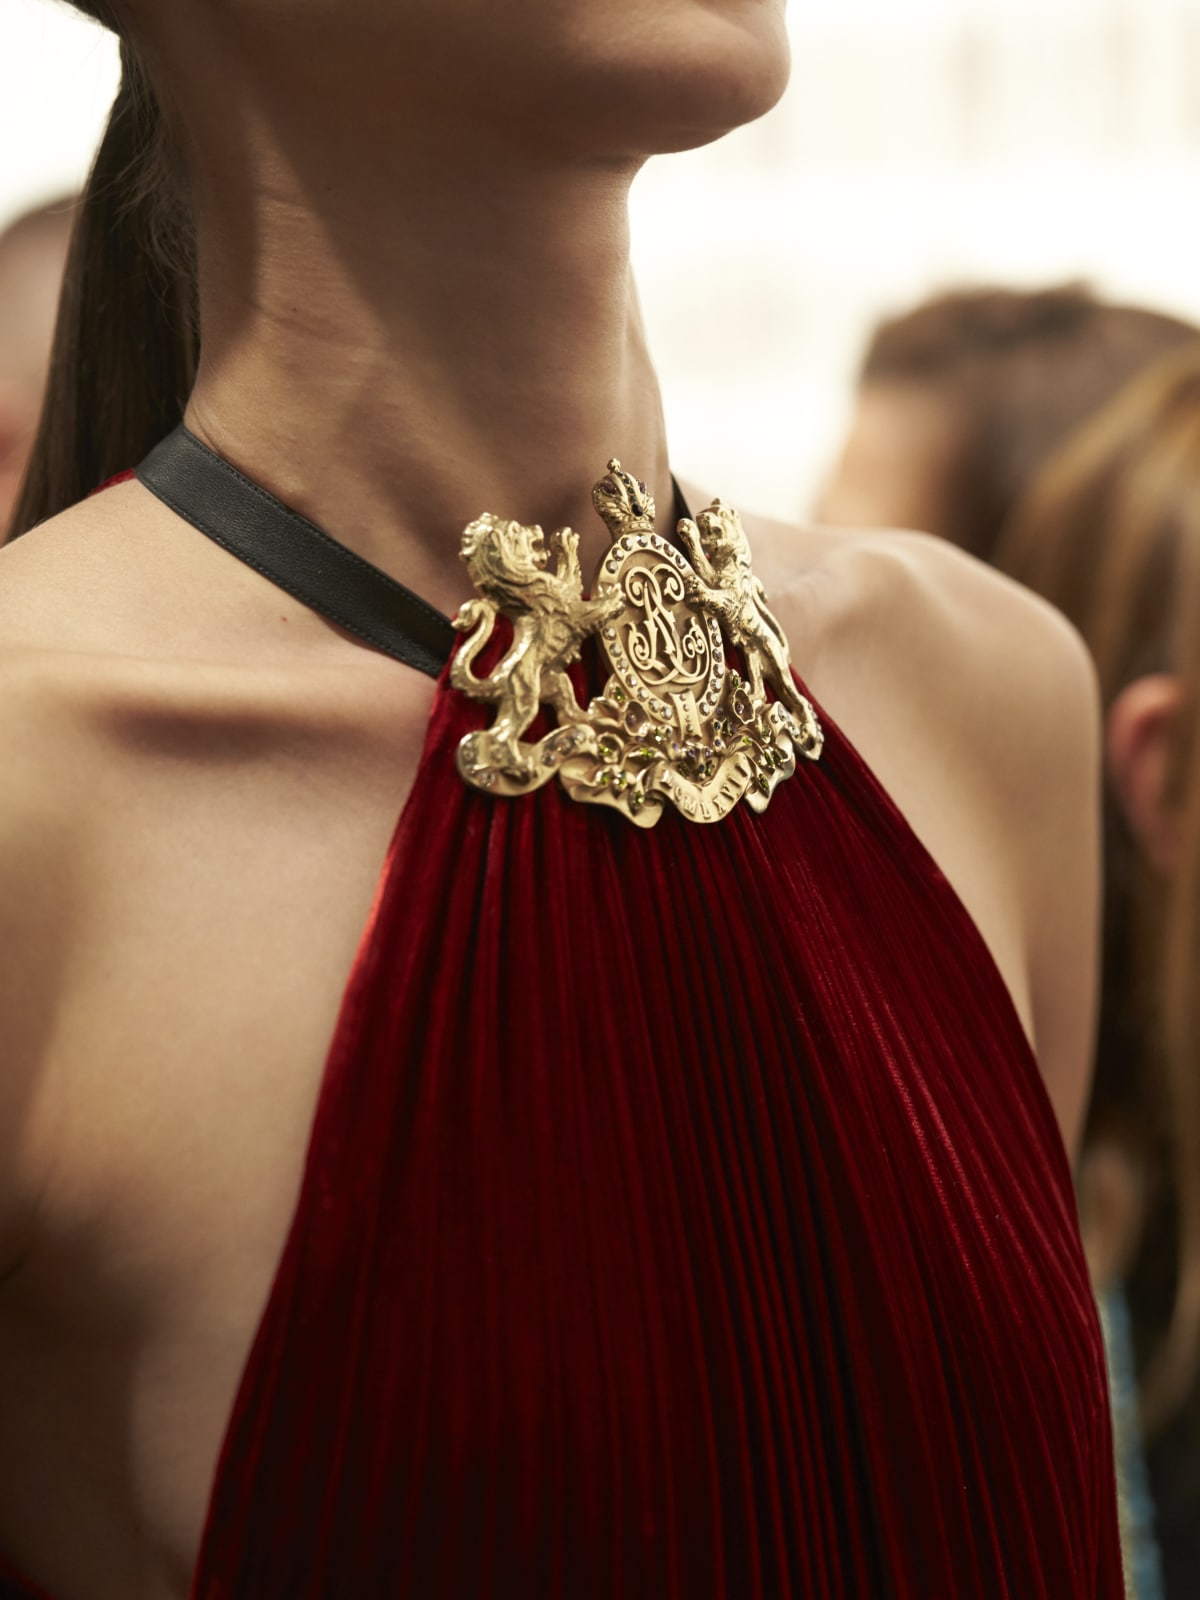 Ralph Lauren fall 2016 collection backstage detail of gown